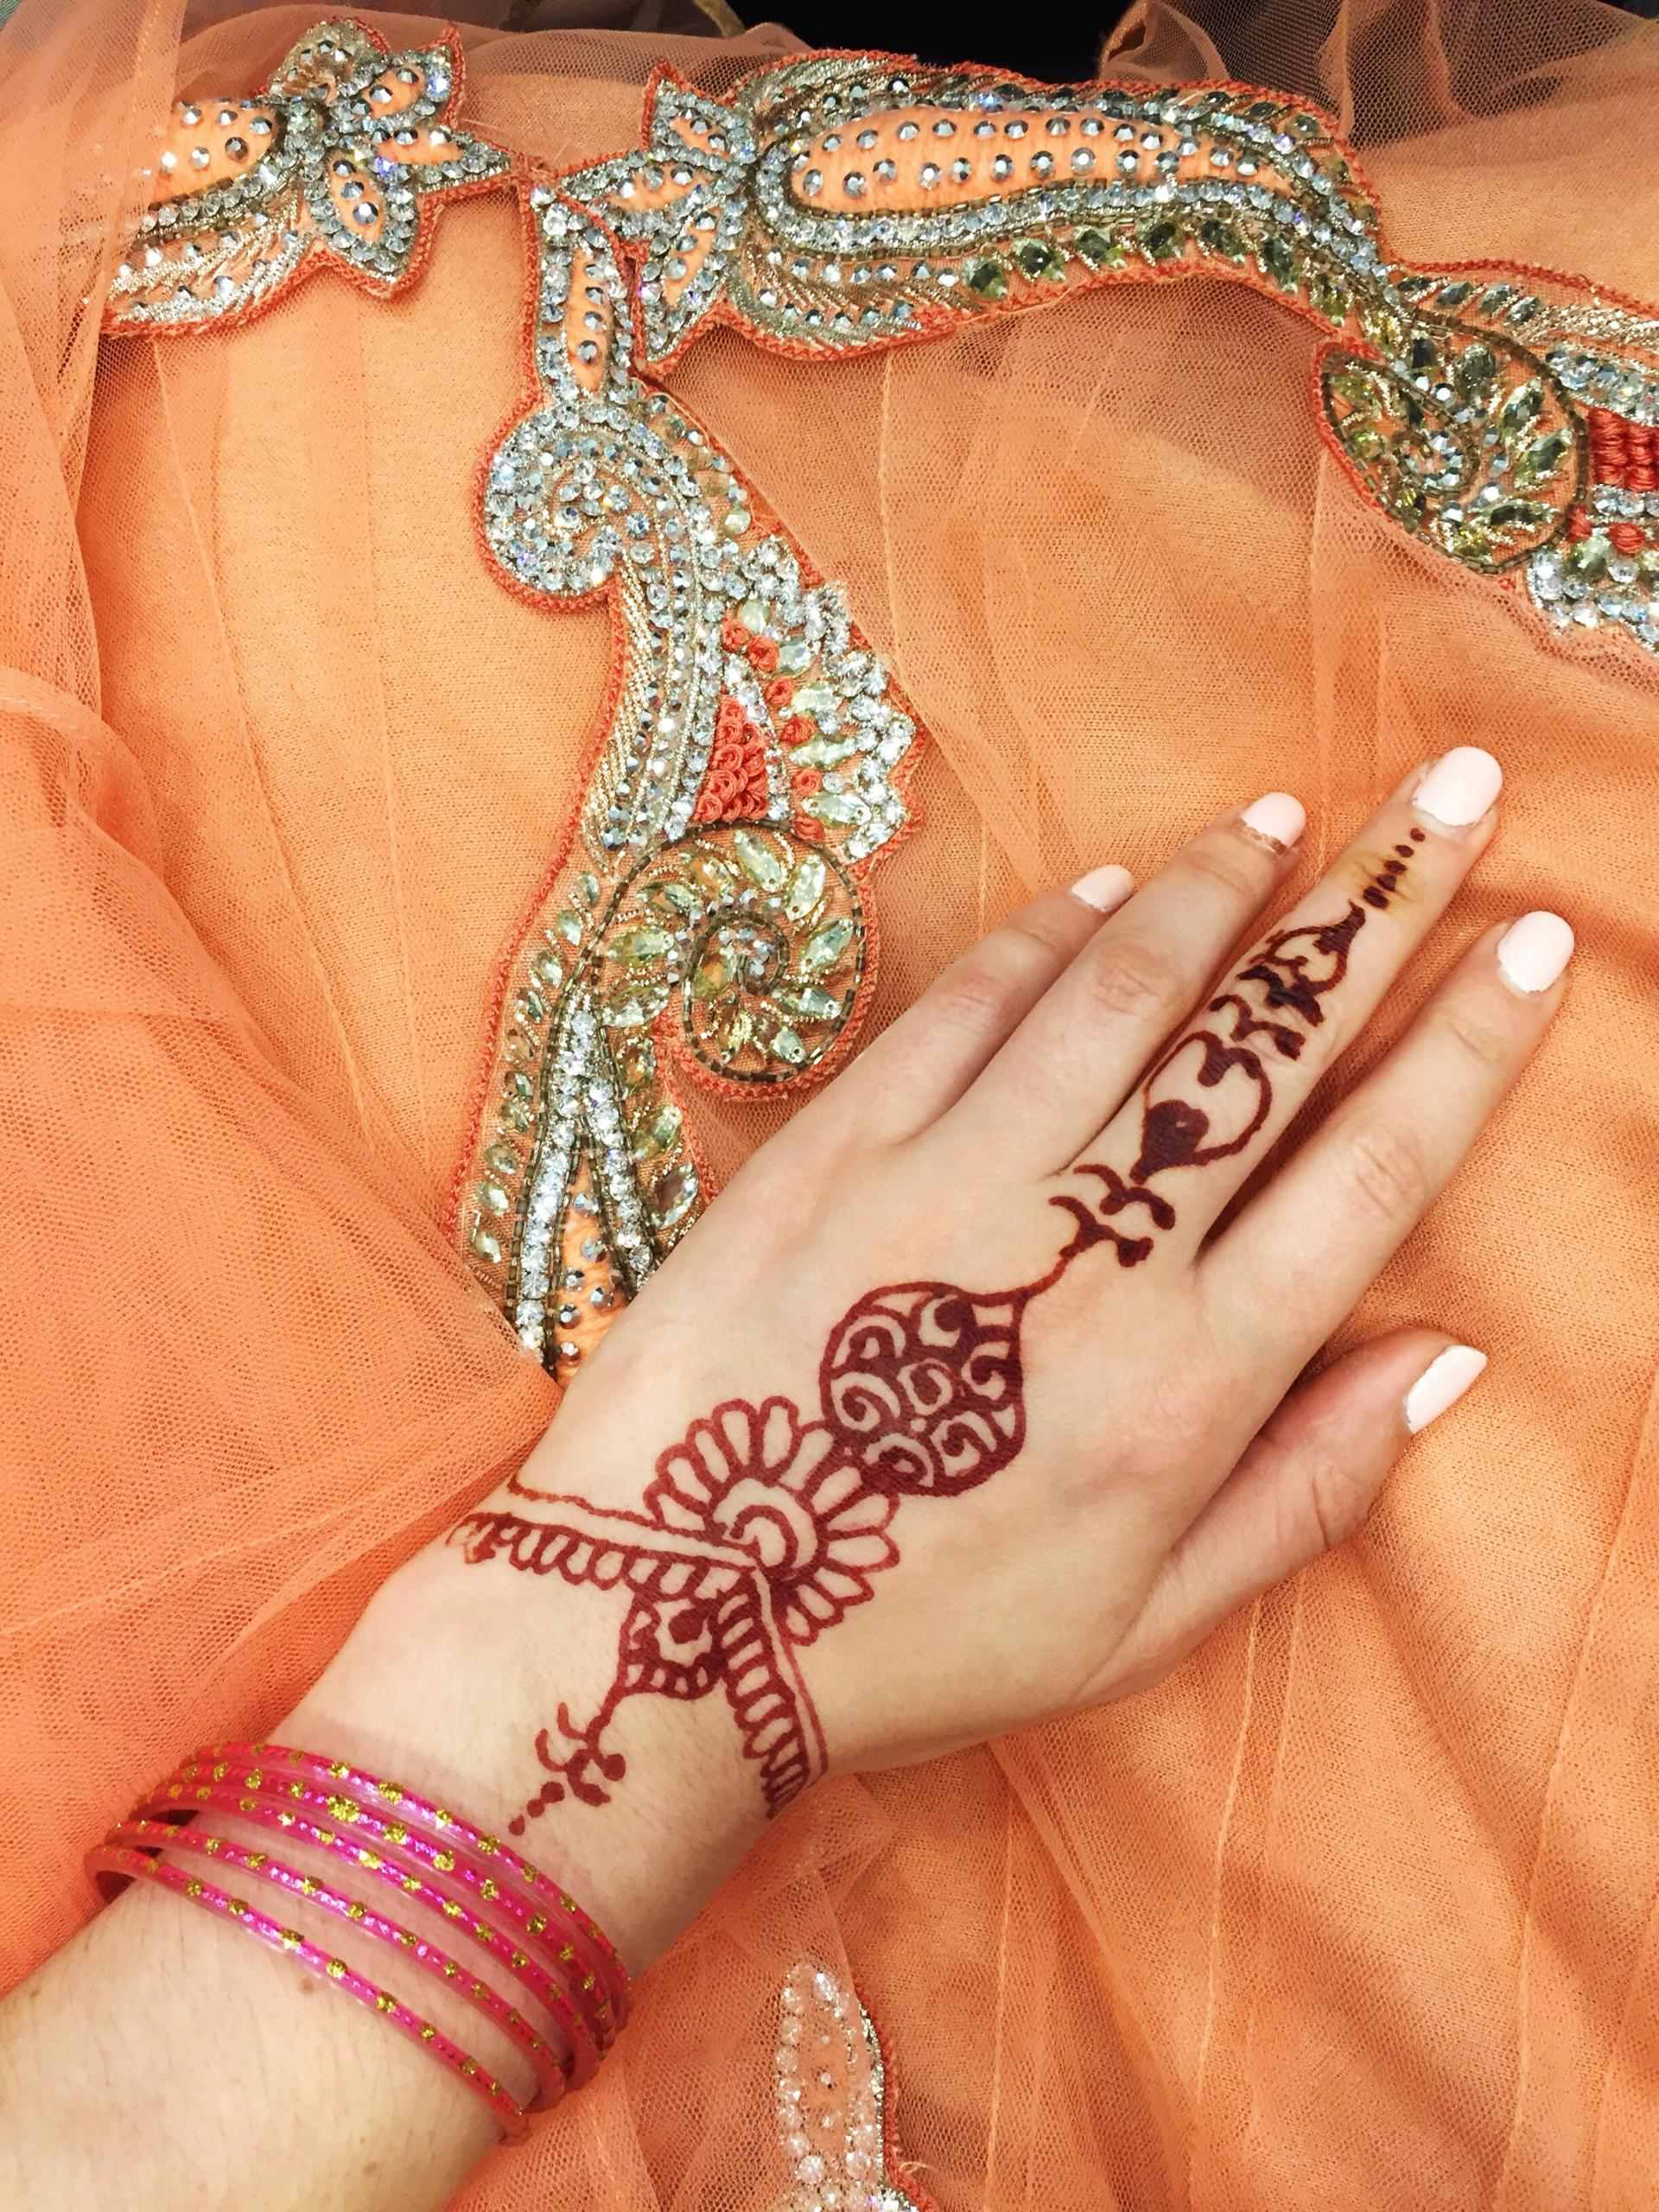 White Girl S Guide To An Indian Wedding Katie Actually